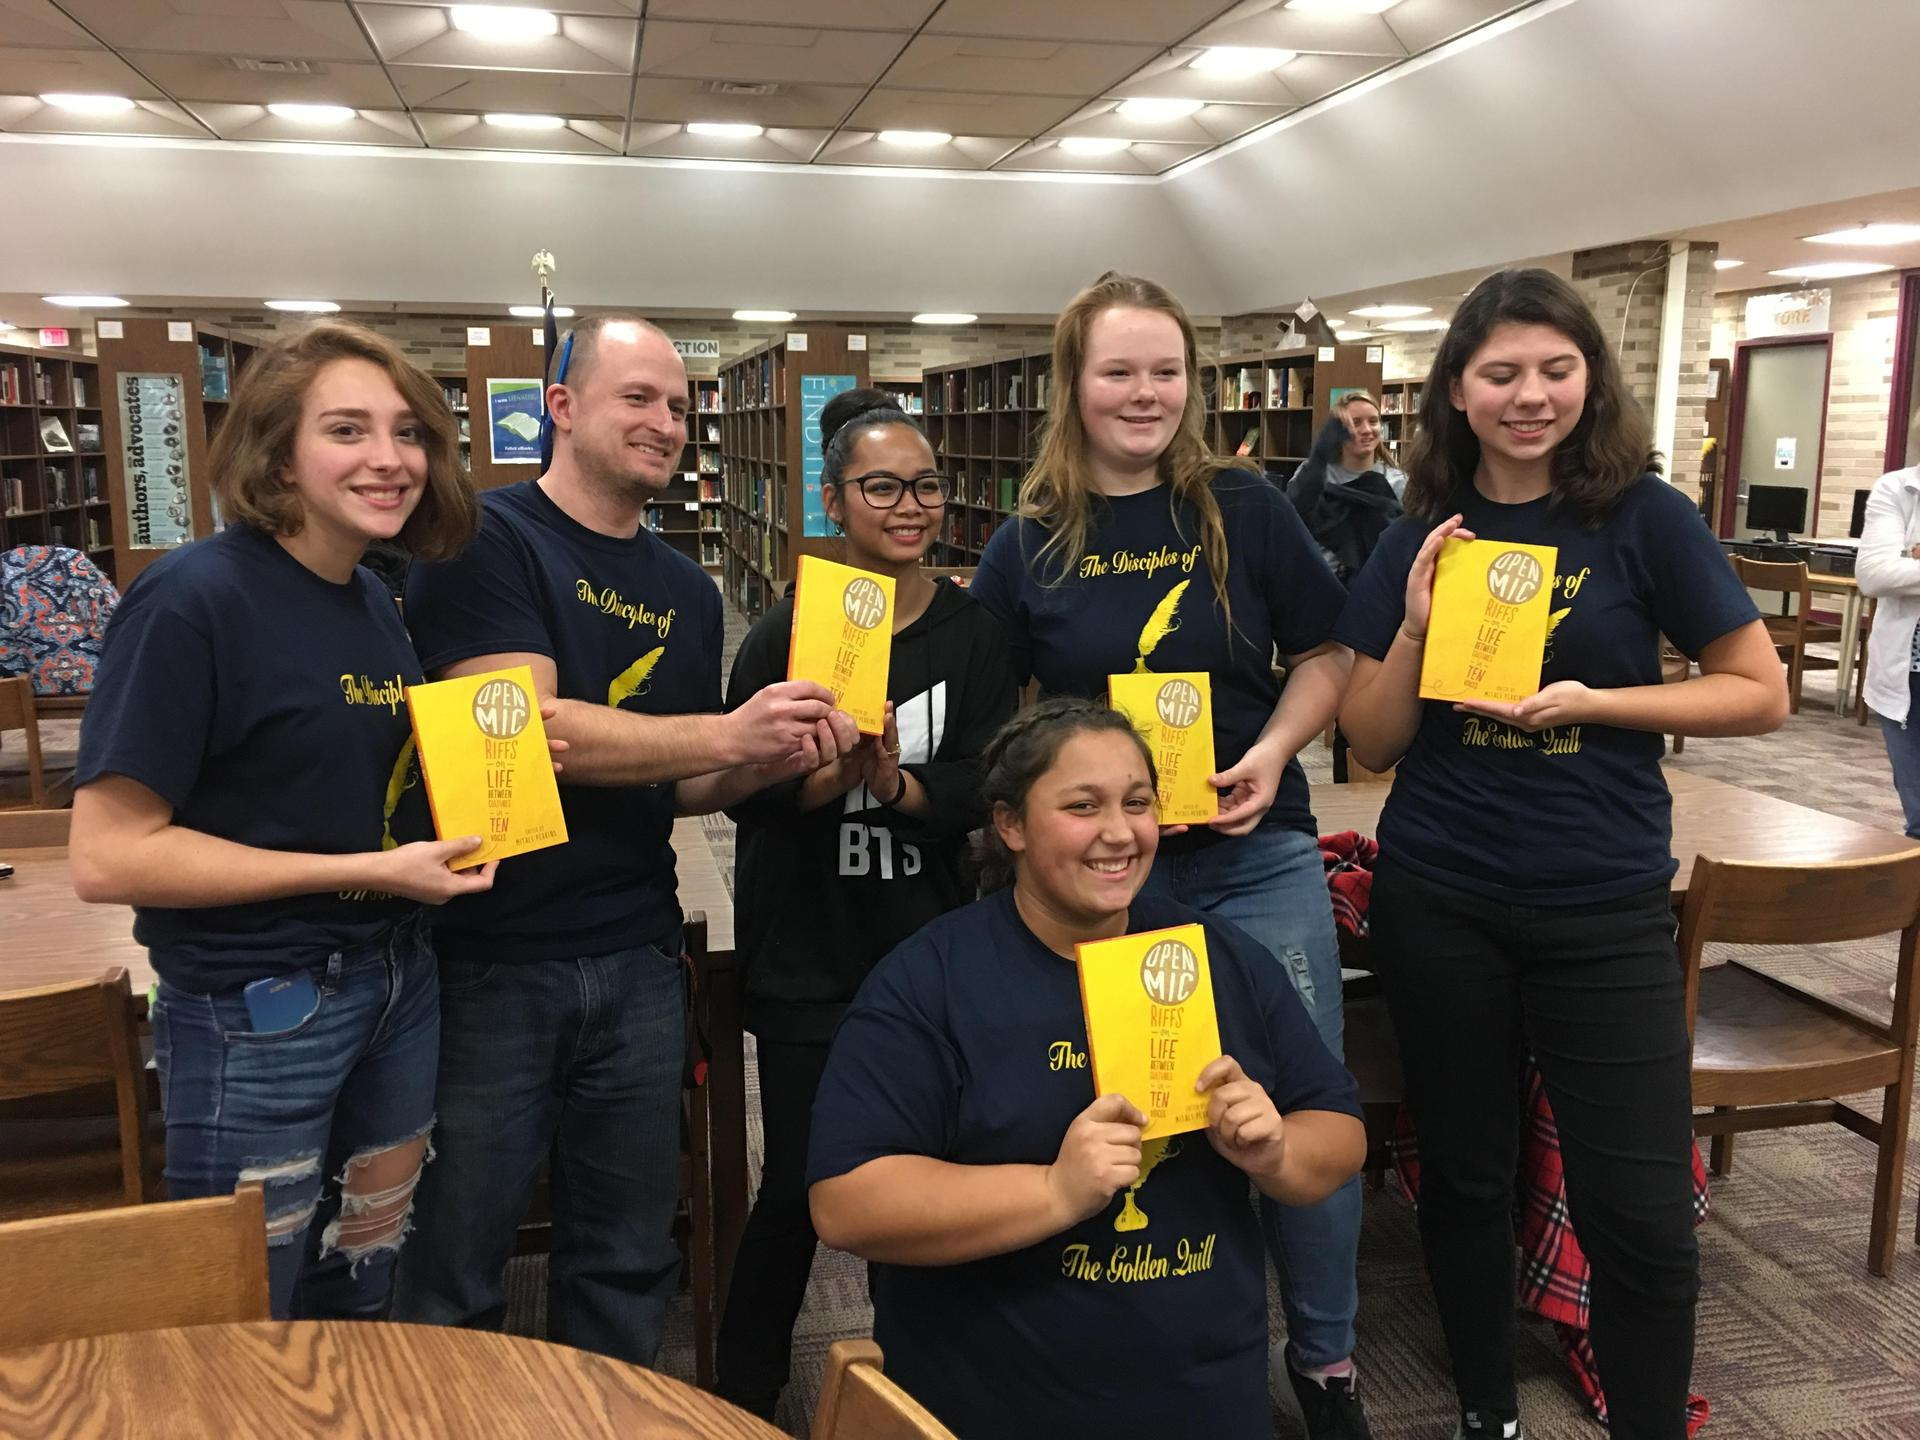 Group of students wearing matching shirts holding up copies of a book